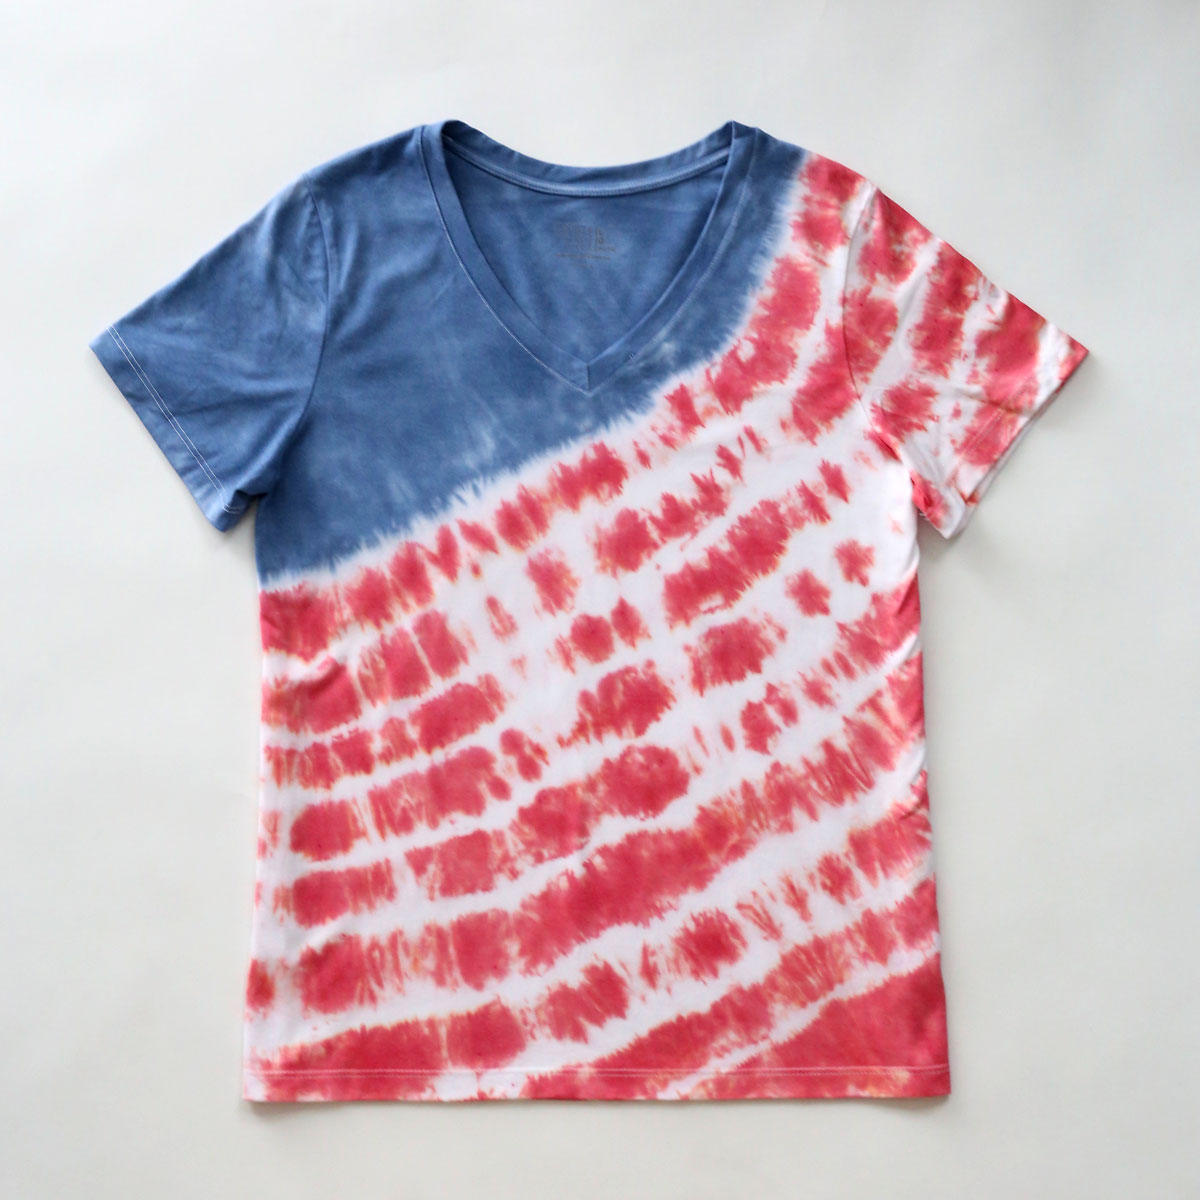 DIY red, white and blue tie color shirt for the fourth of July